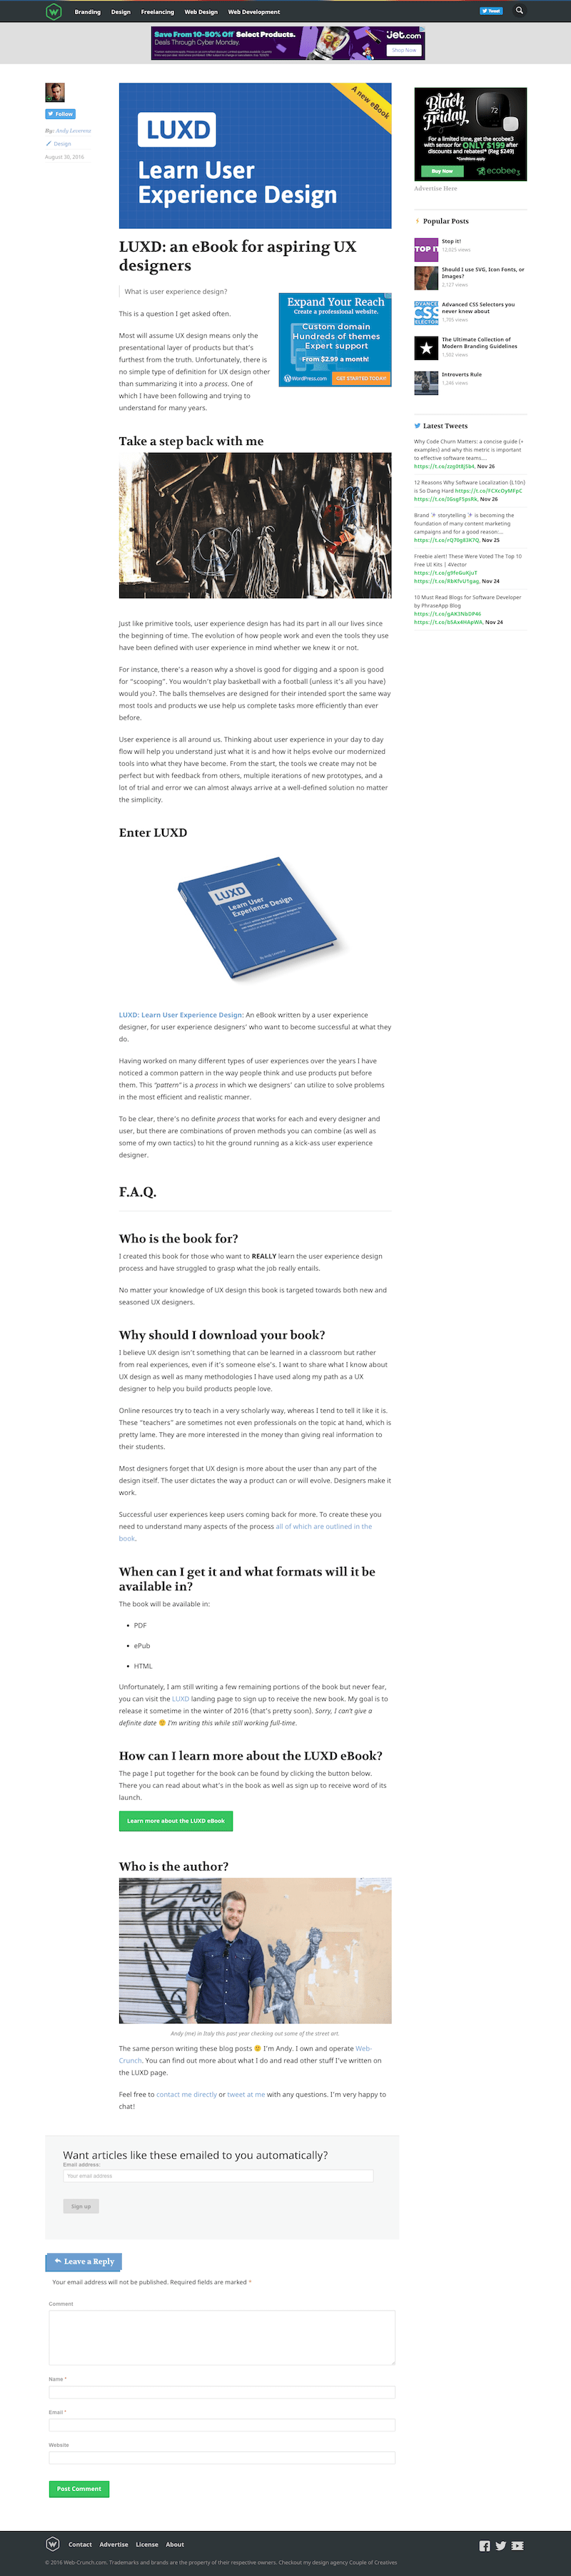 screenshot of an older version of web-crunch.com article page